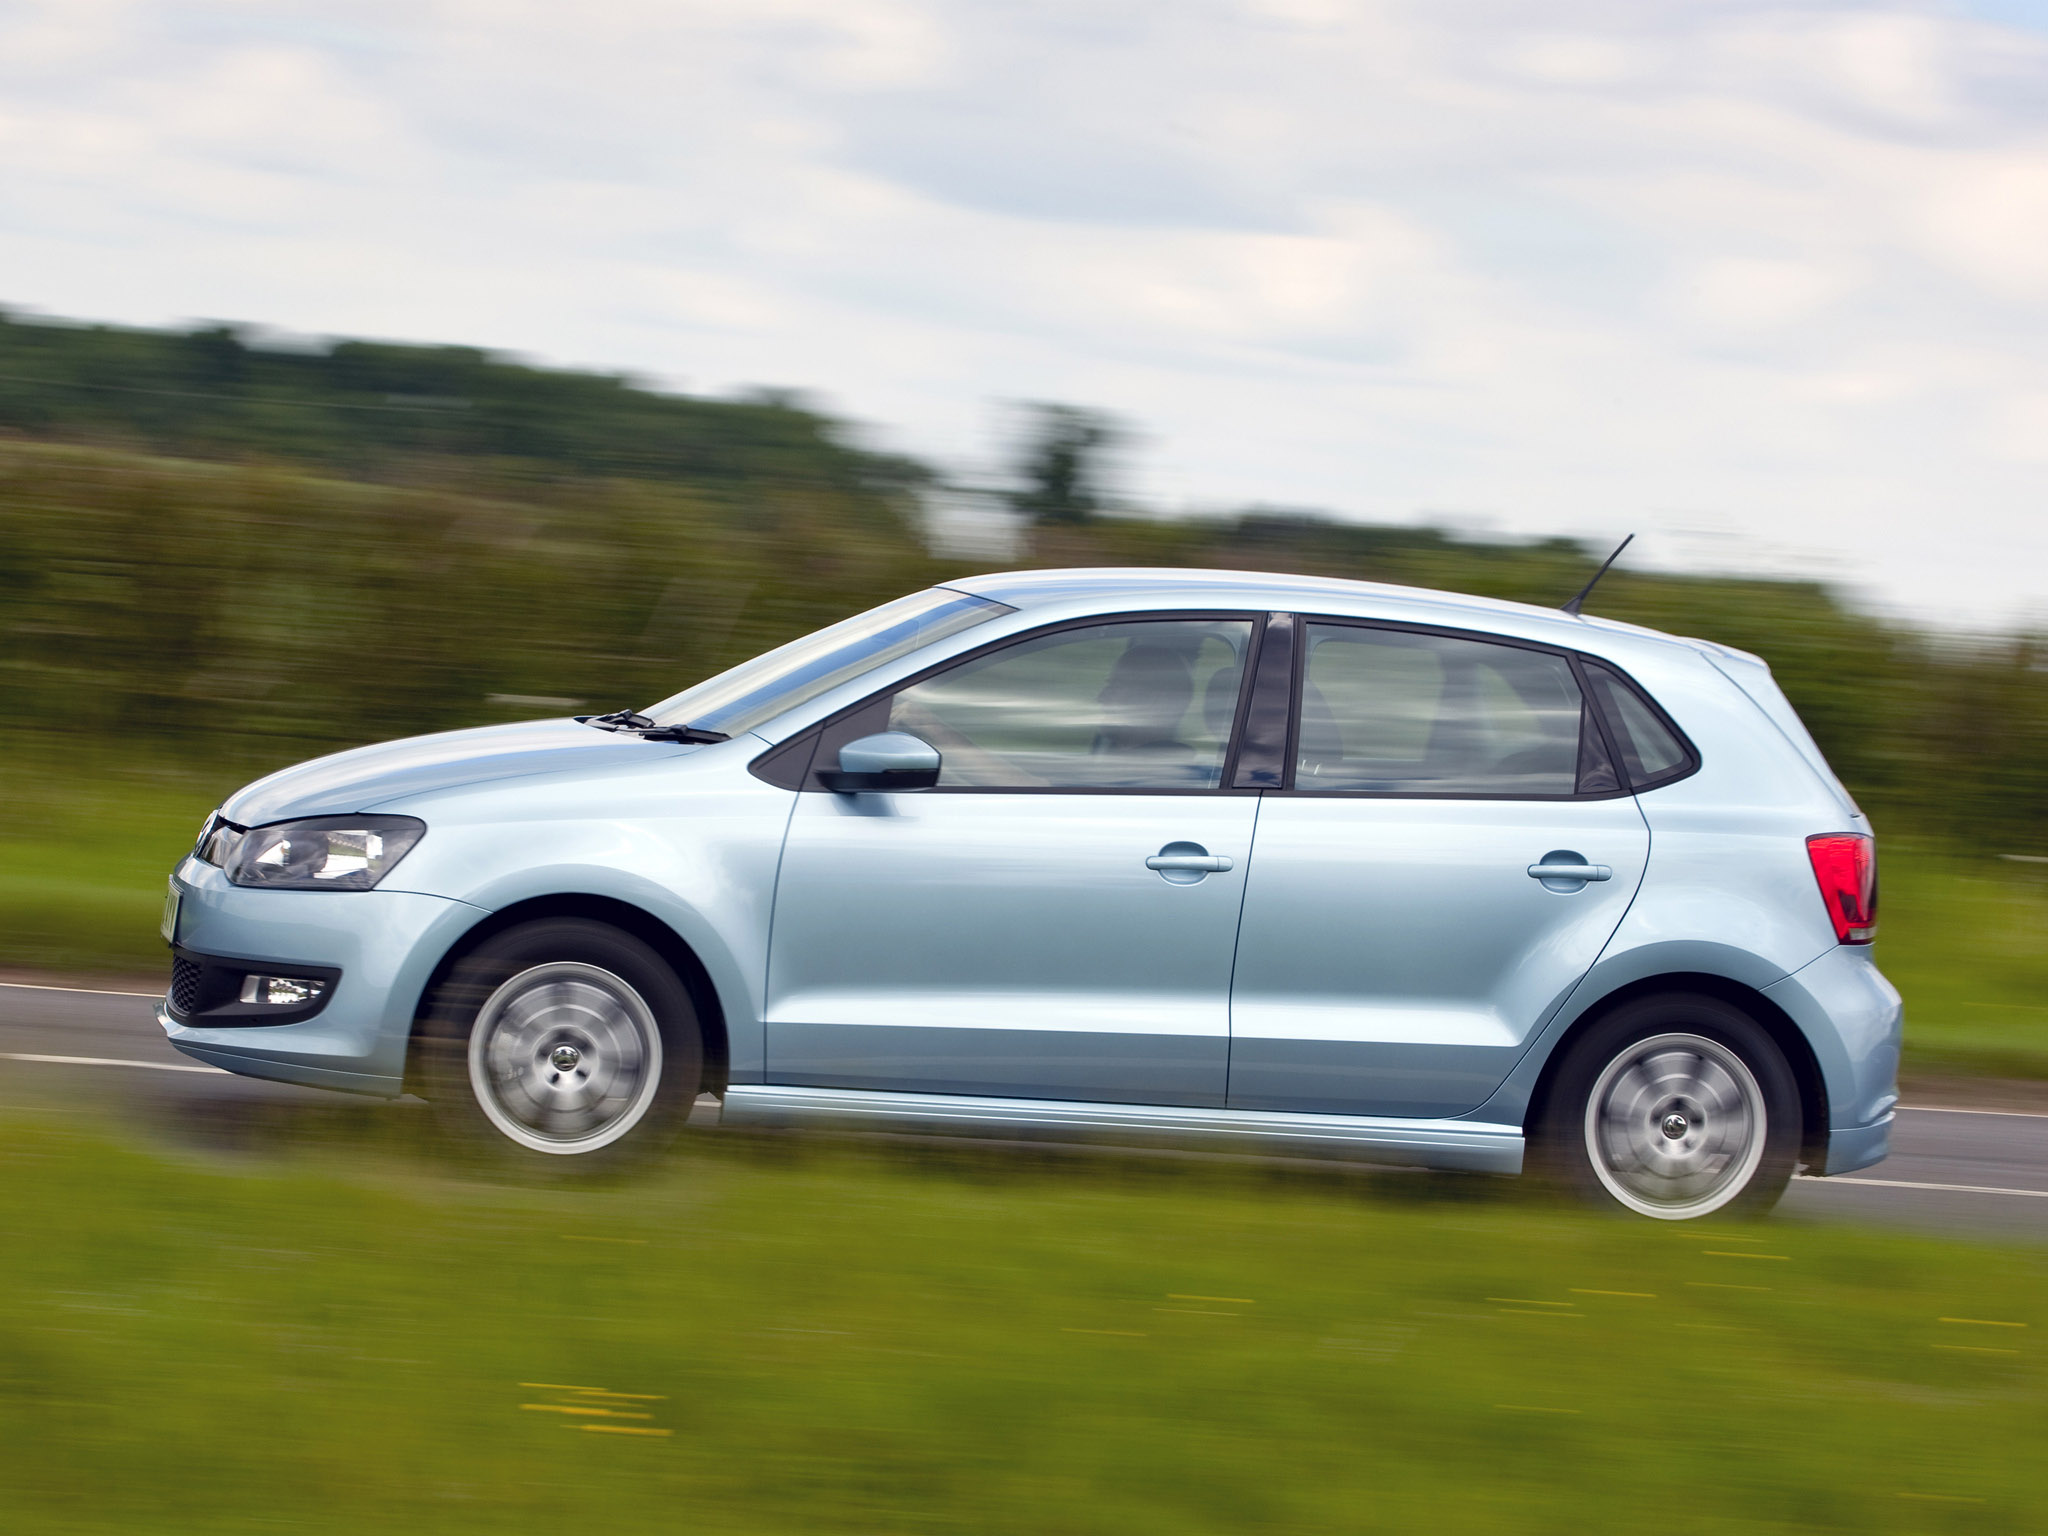 2009 Volkswagen Polo Hatchback 5-door